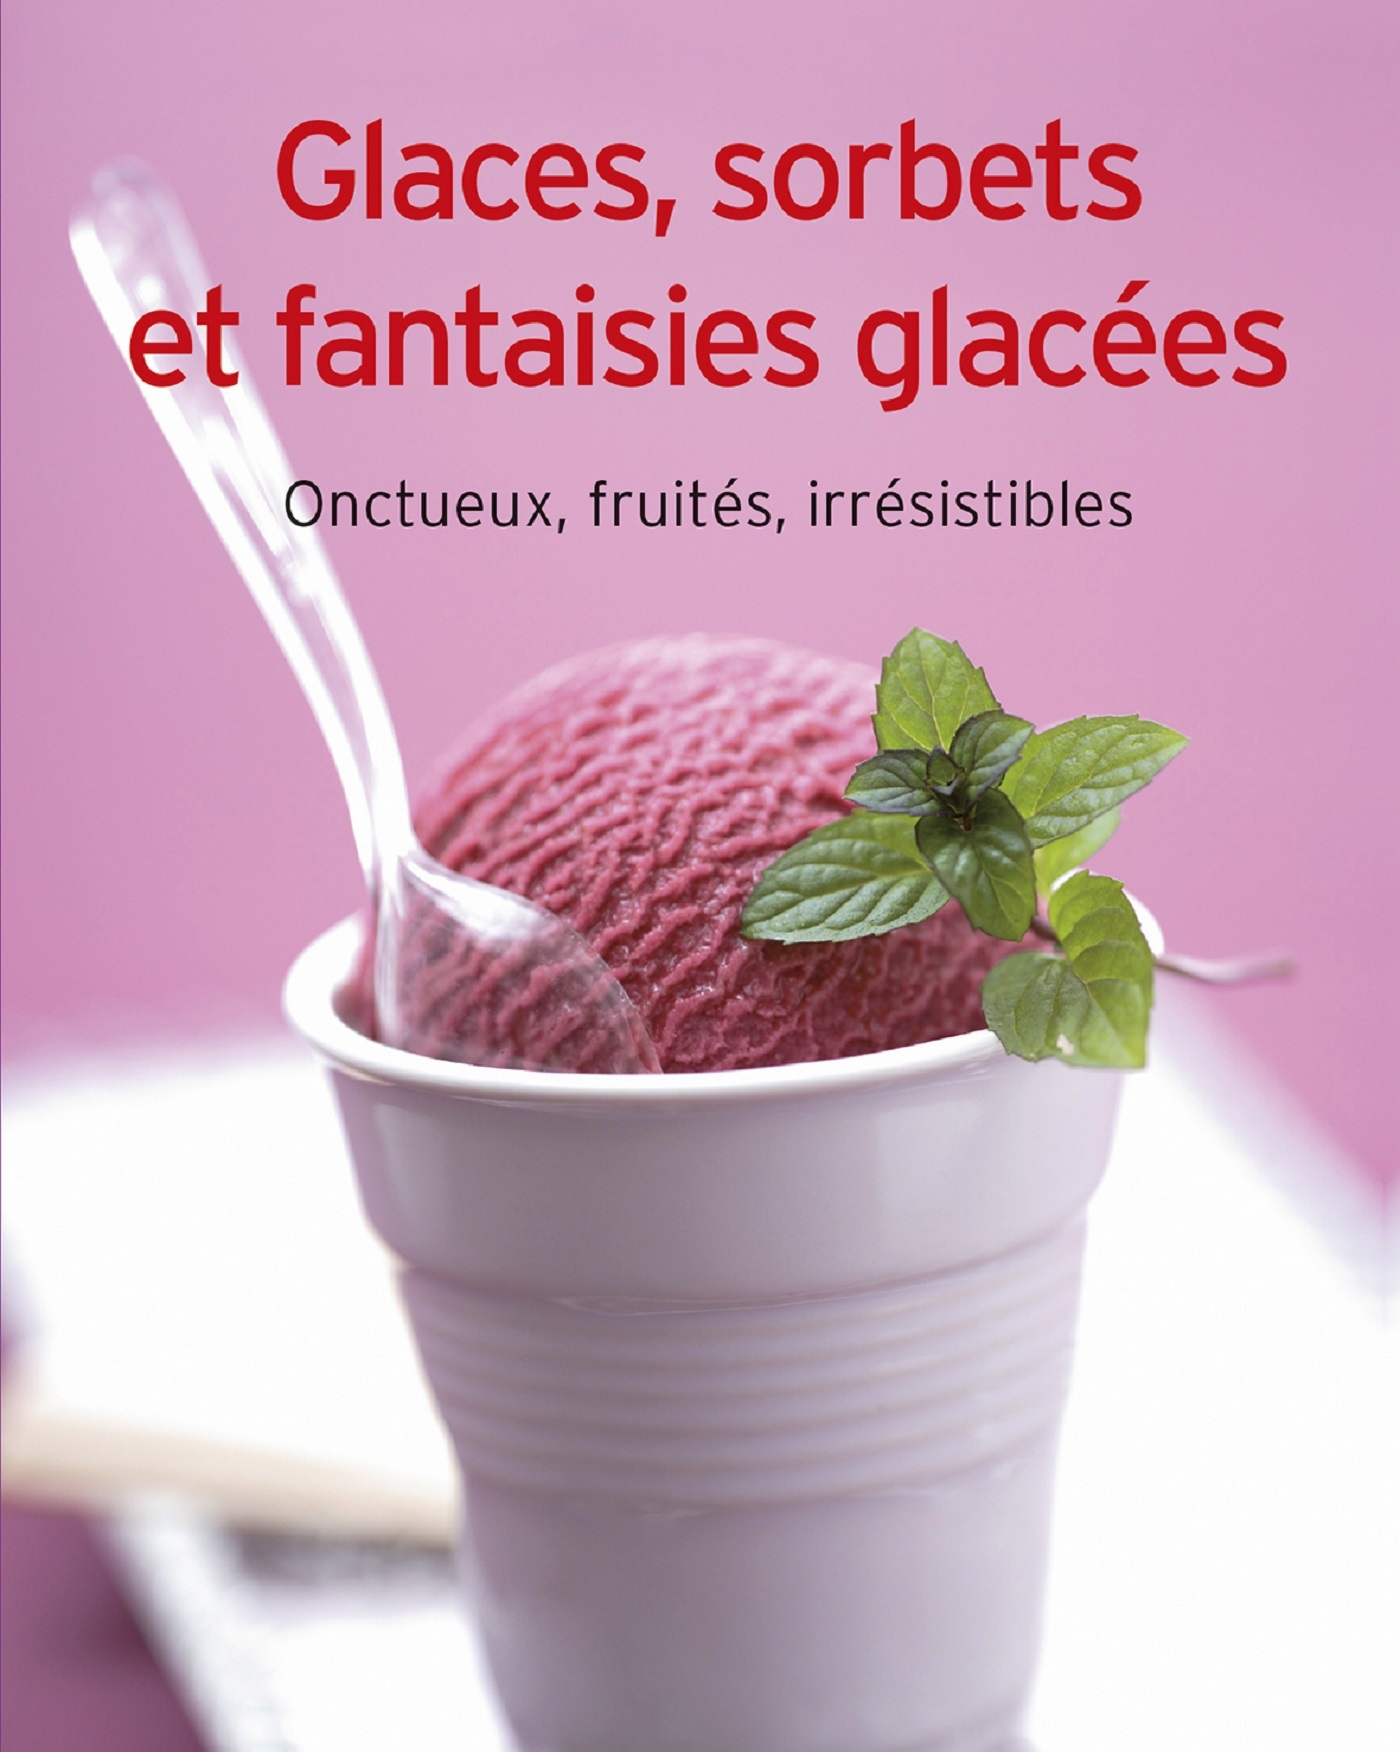 GLACES SORBET ET FANTAISIES GLACEES